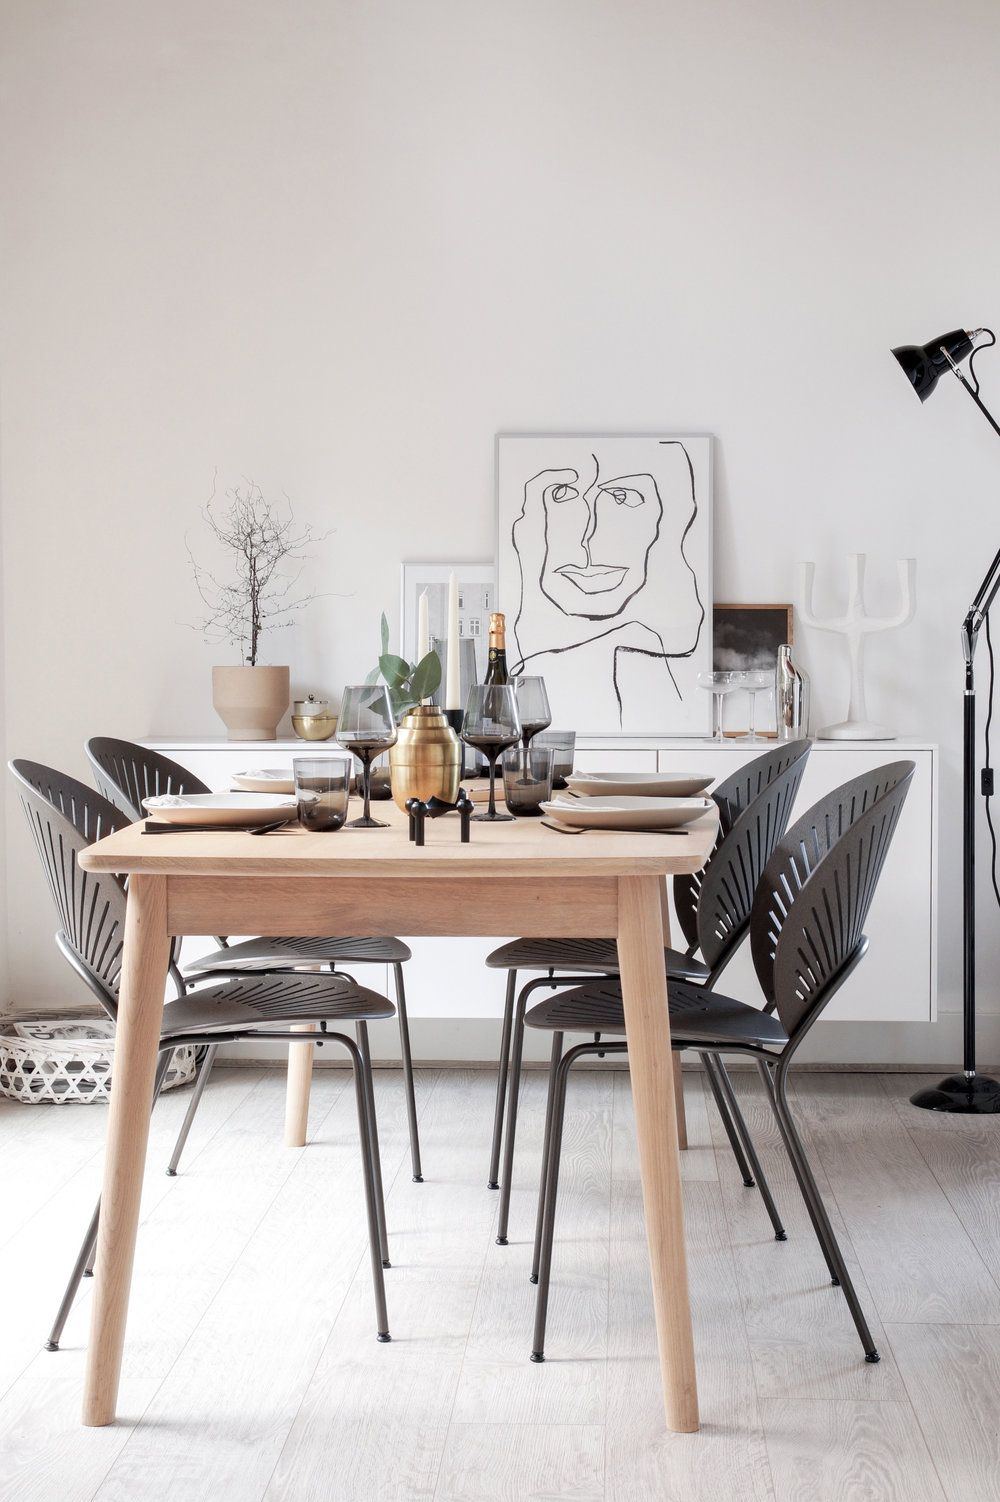 Thanks to hege in france for this beautiful feature on the trinidad chair adding elegance and intimacy any interior  true icon living designed by also best at table images harvest decorations ideas mesas rh pinterest